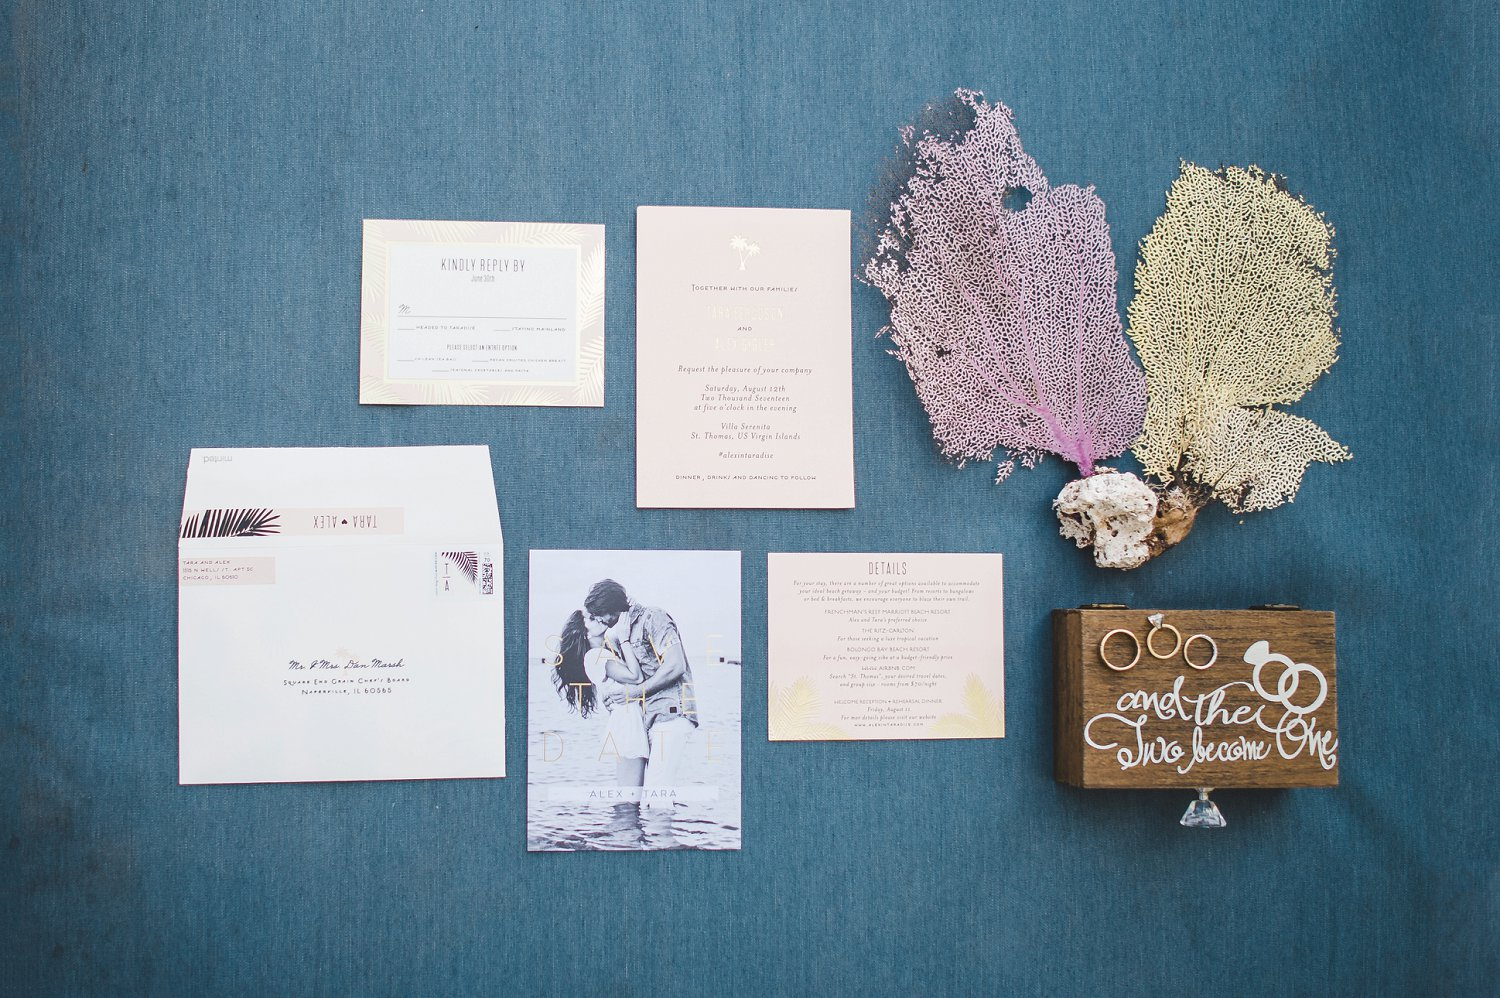 Tropical love, guilded palms, wedding invitation suite and save the date cards by minted.com are perfect for a destination wedding.